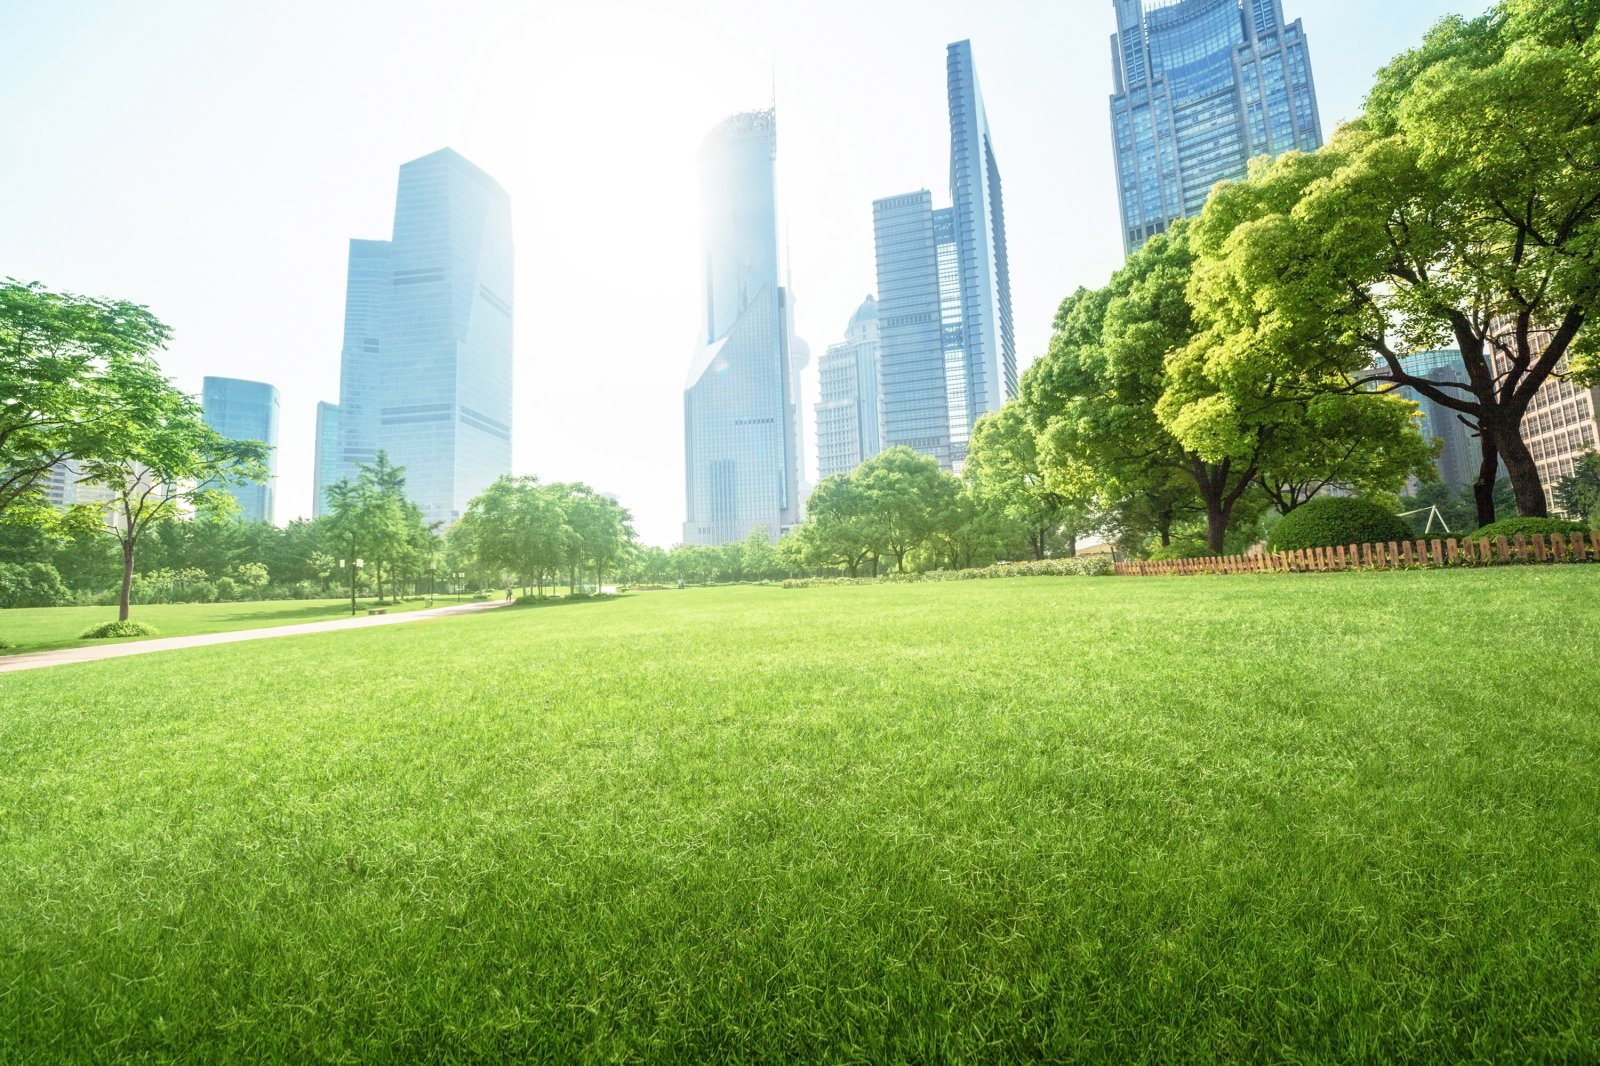 Rethinking the future of cities: How trees are revolutionizing cities around the world